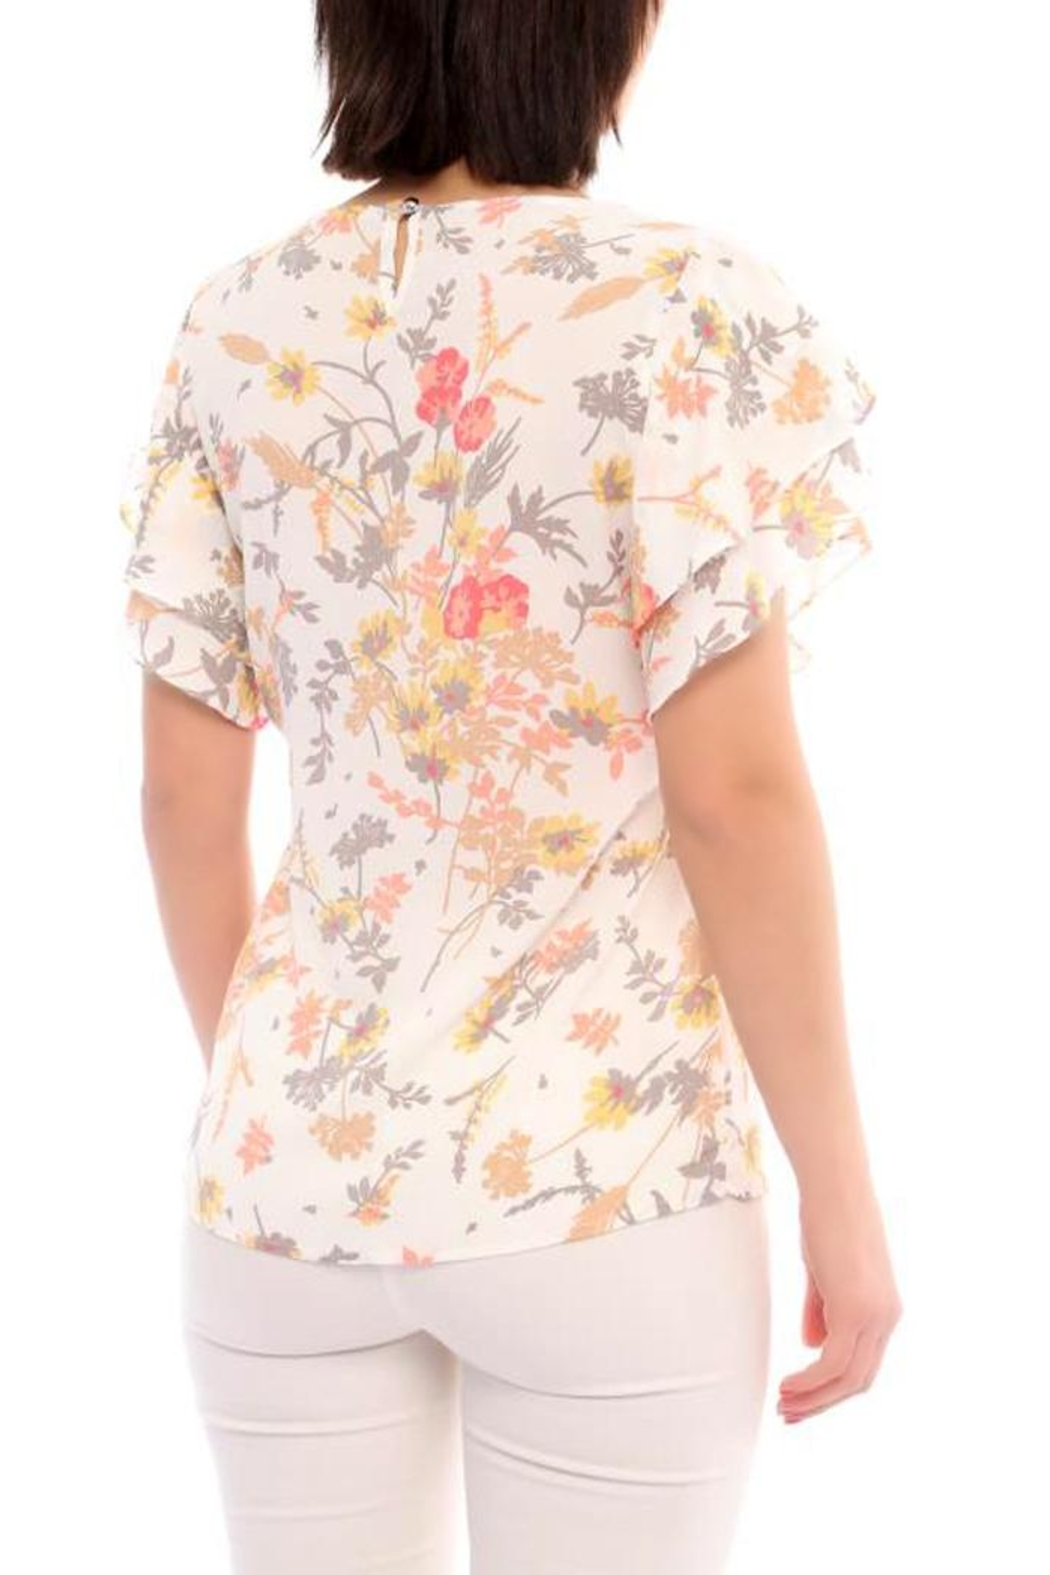 Marvy Fashion Flower Print Top - Front Full Image